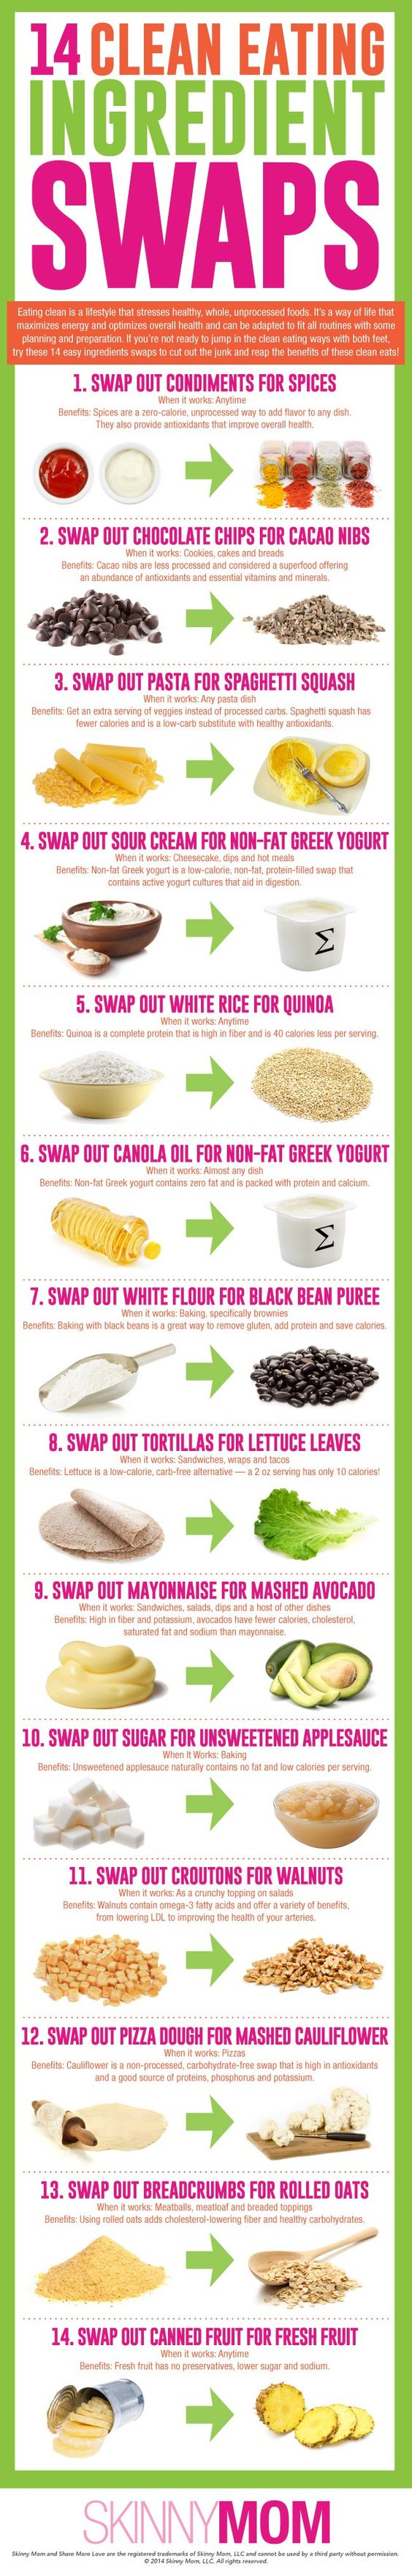 8 Clean Eating Tips | Skinny Mom | Where Moms Get the Skinny on Healthy Living: